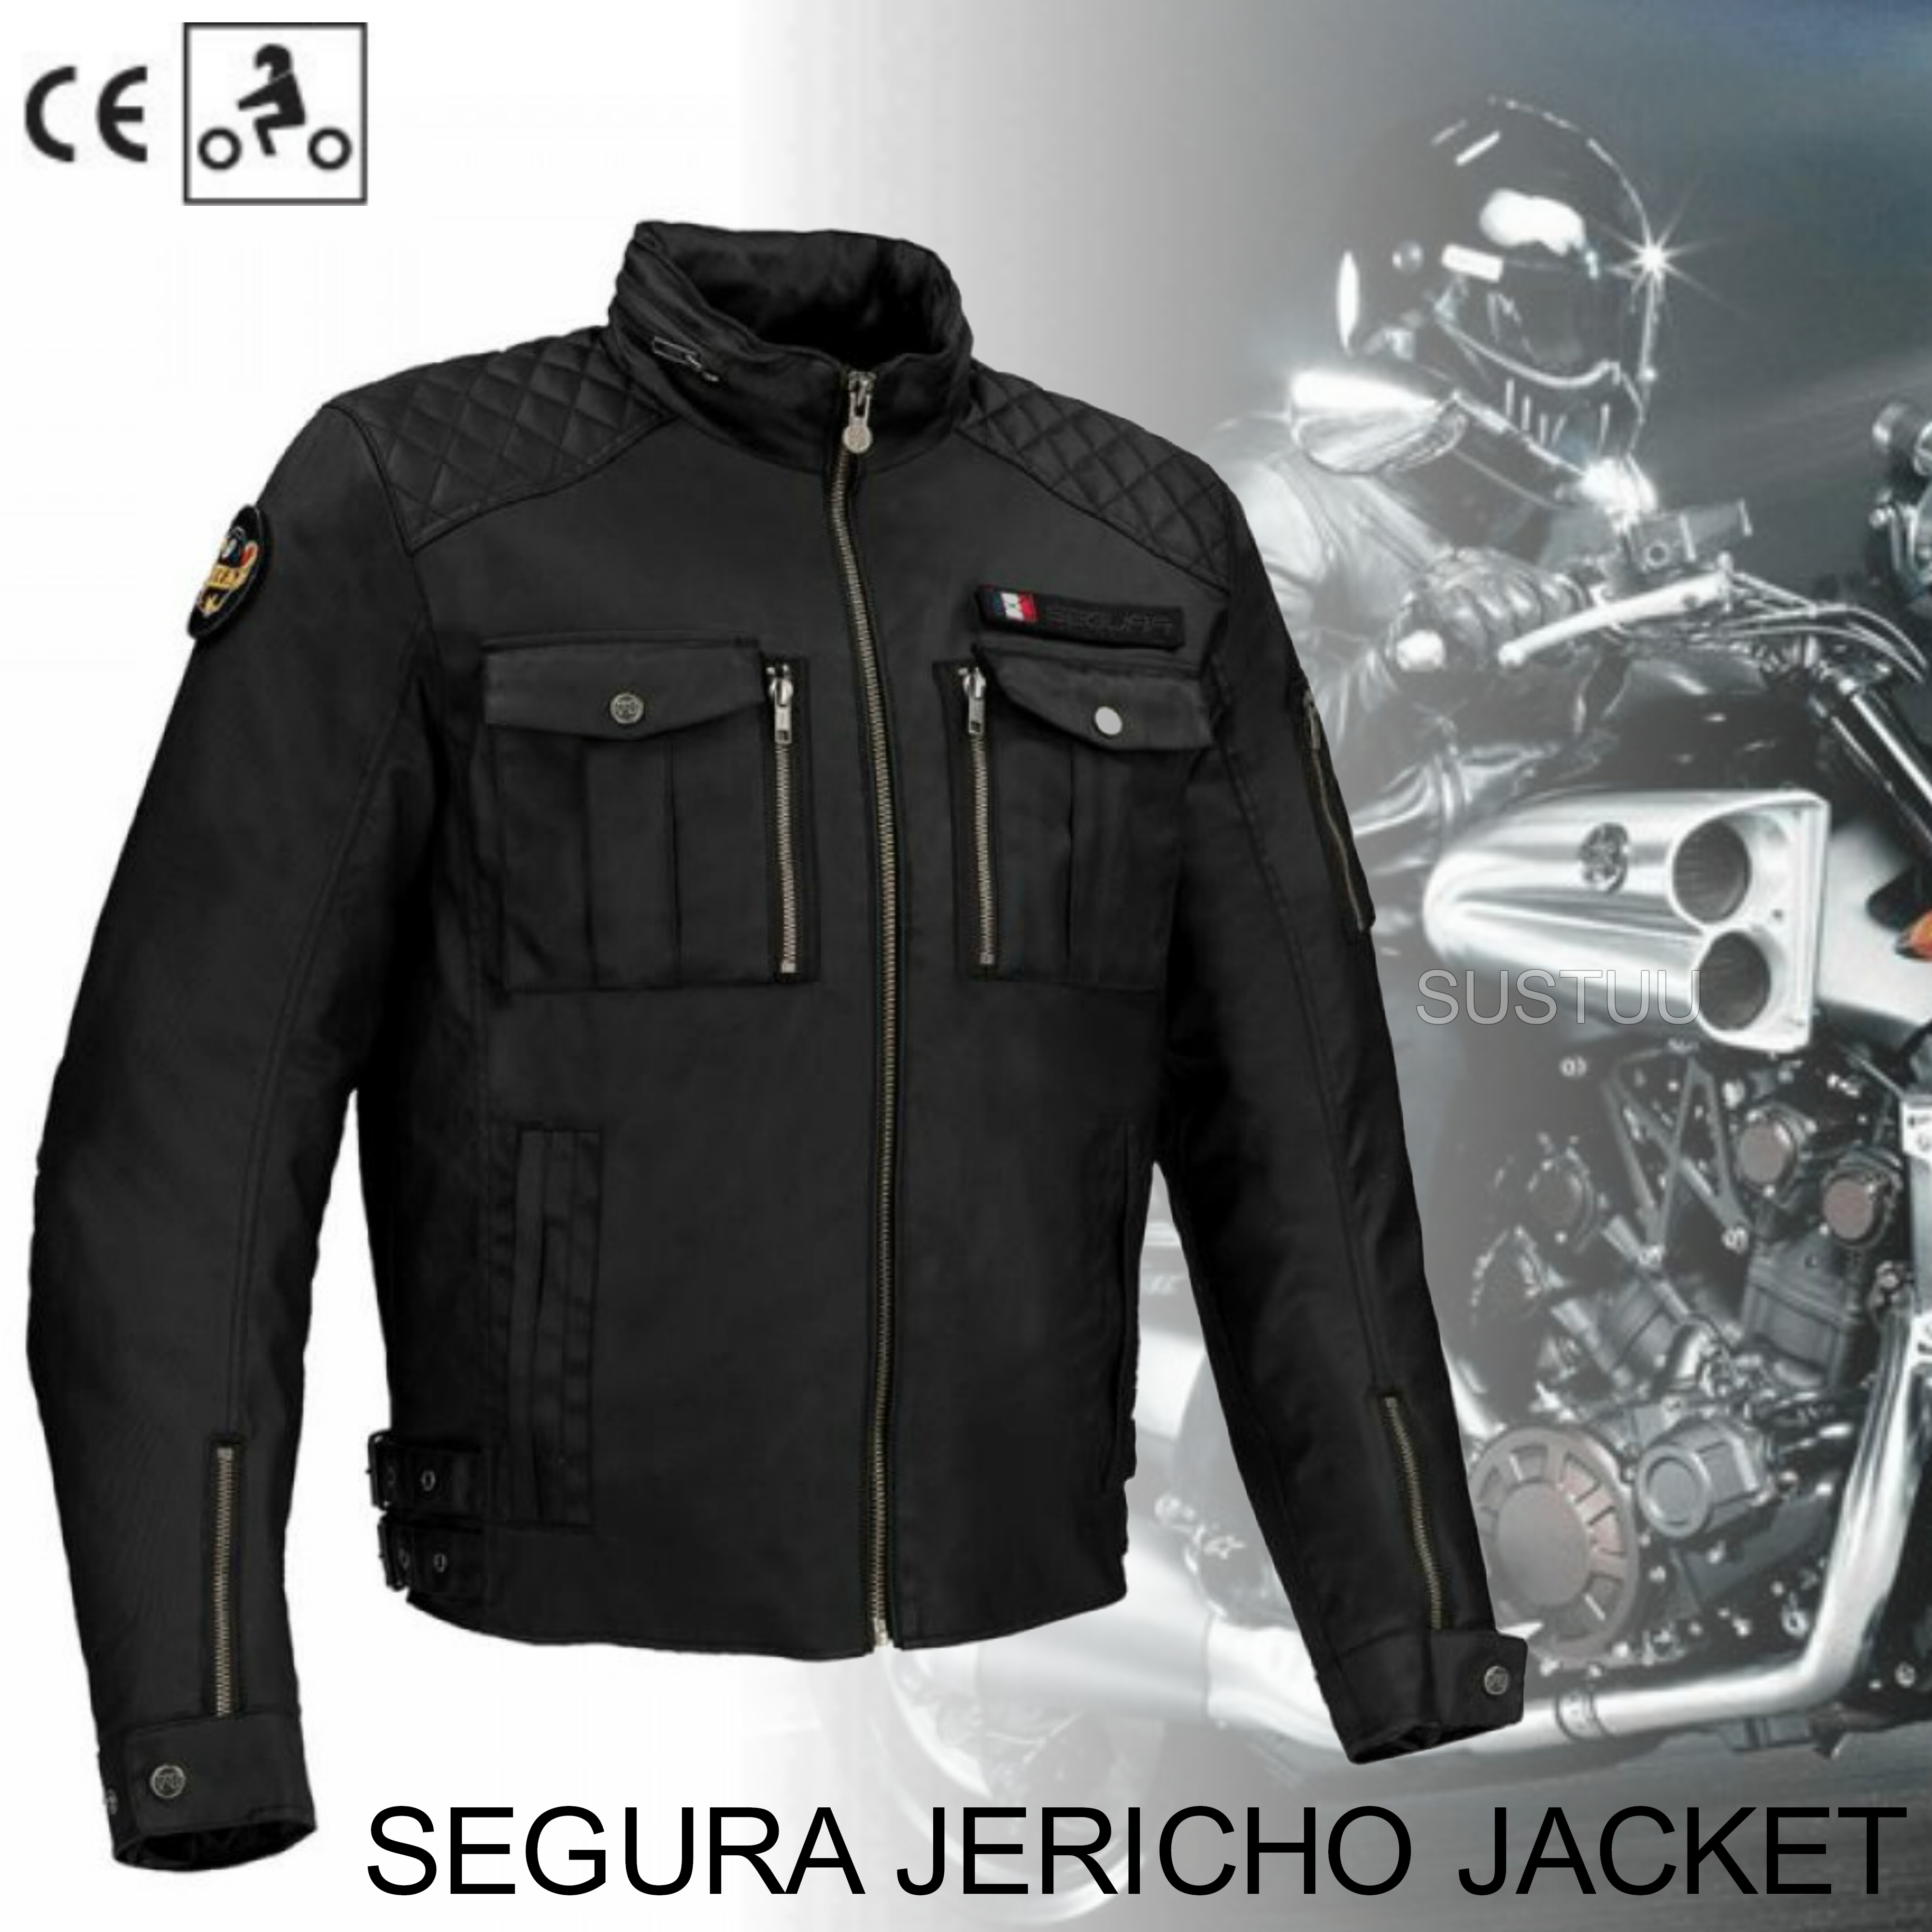 New Segura Jericho Motorcycle/Bike Men Textile Jacket|CE Approved|Waterproof & Breathable|Black